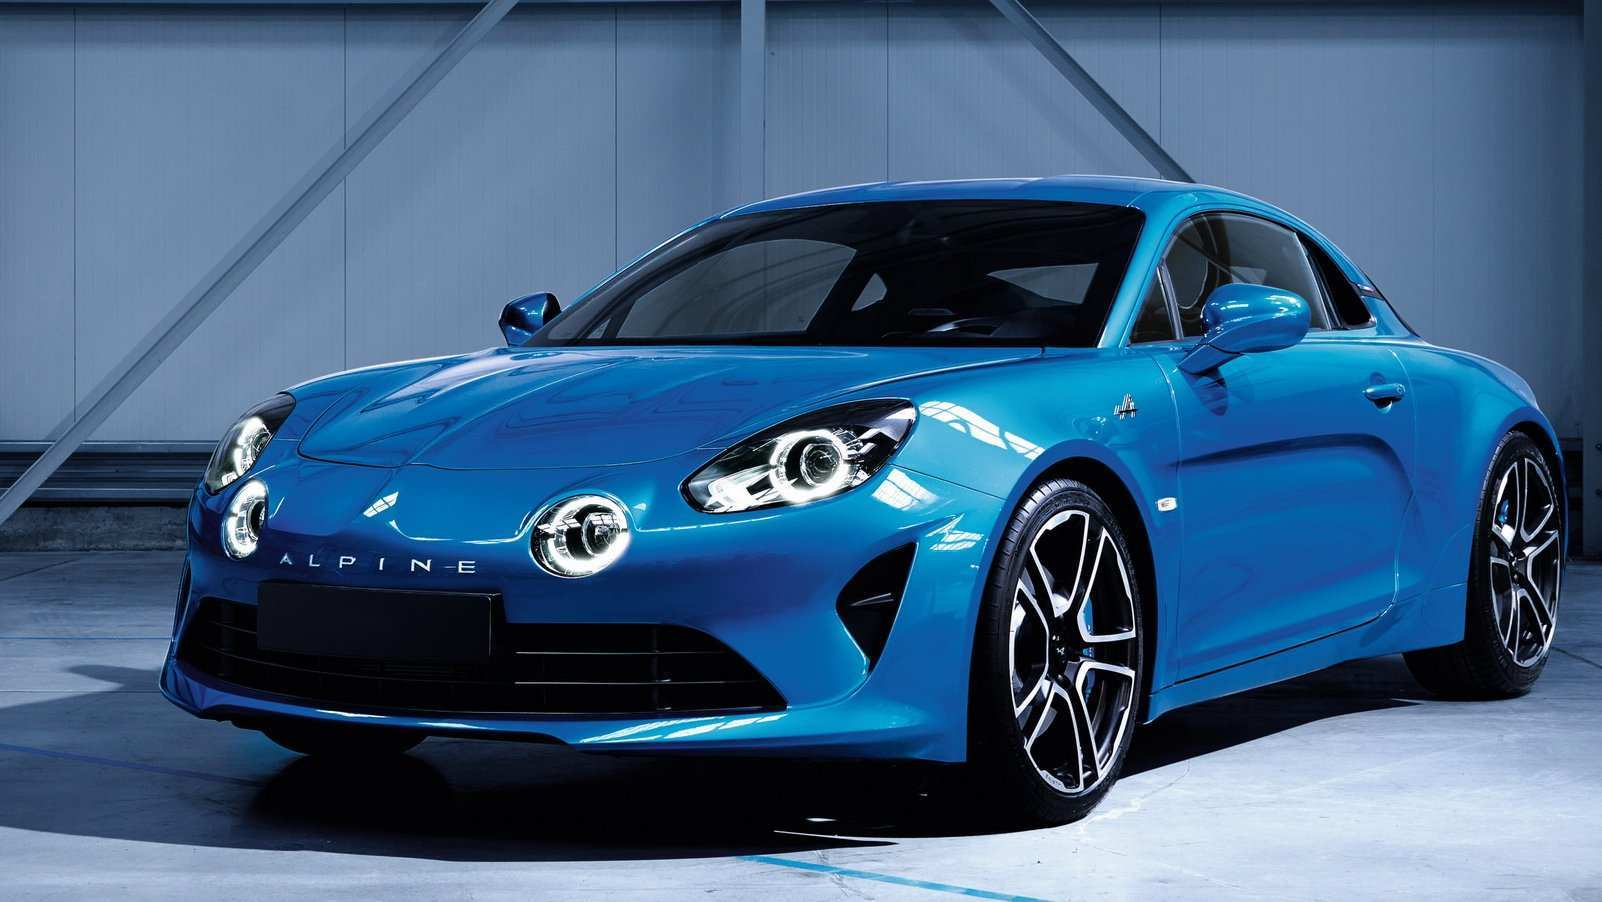 72 New Renault Alpine 2020 Price And Release Date